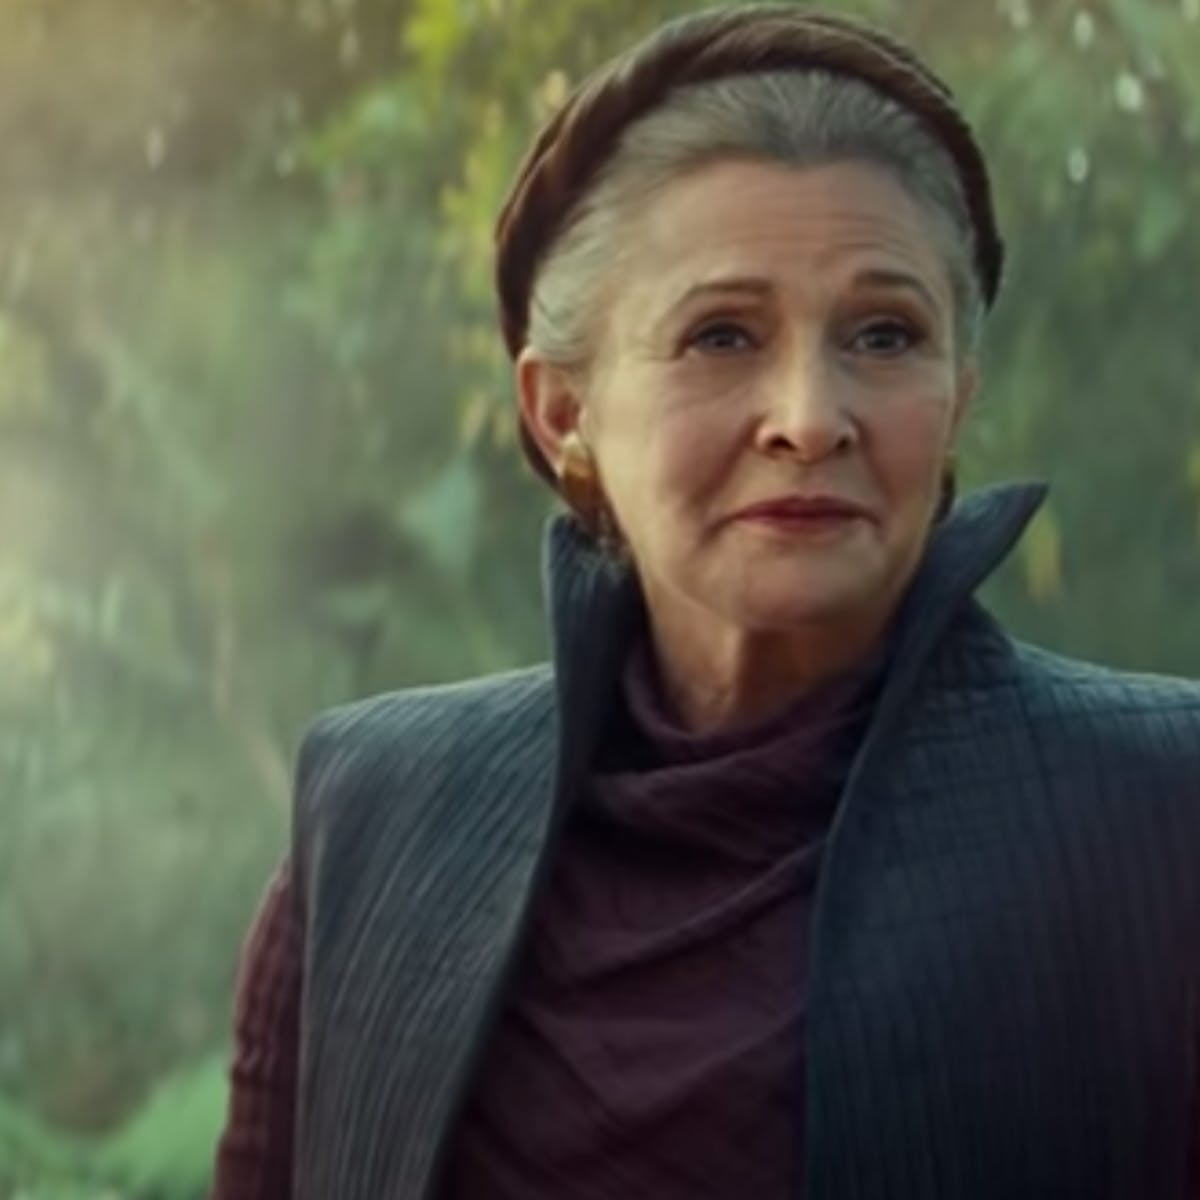 'Star Wars 9' leak reveals how Leia and more characters will die